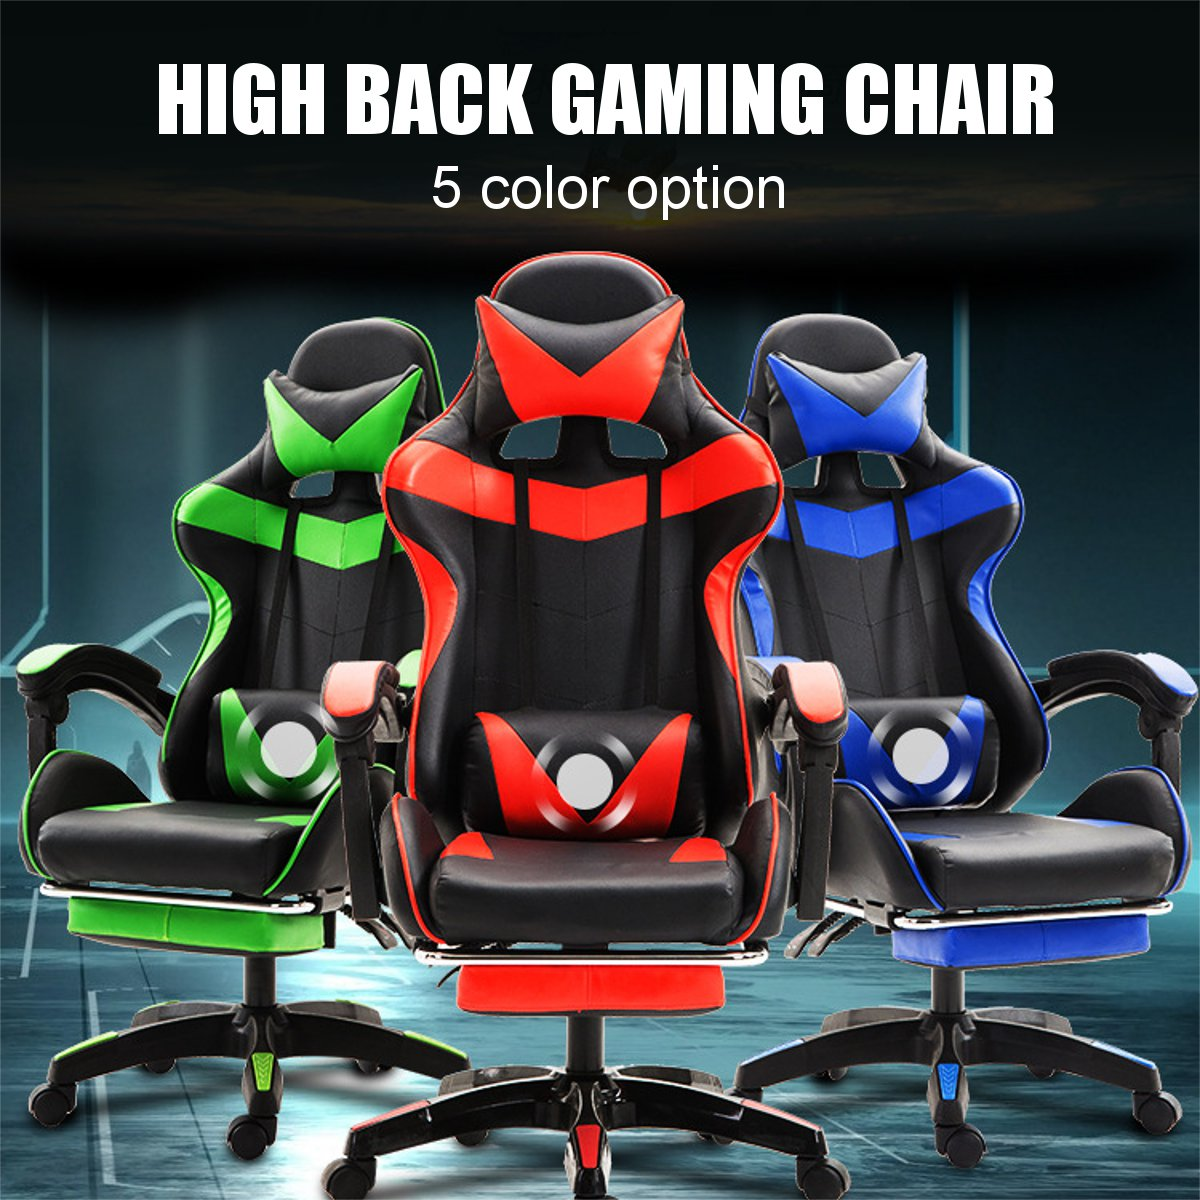 New PU Leather Racing Gaming Chair Office High Back Ergonomic Recliner With Footrest Professional Computer Chair Furniture 5 Col